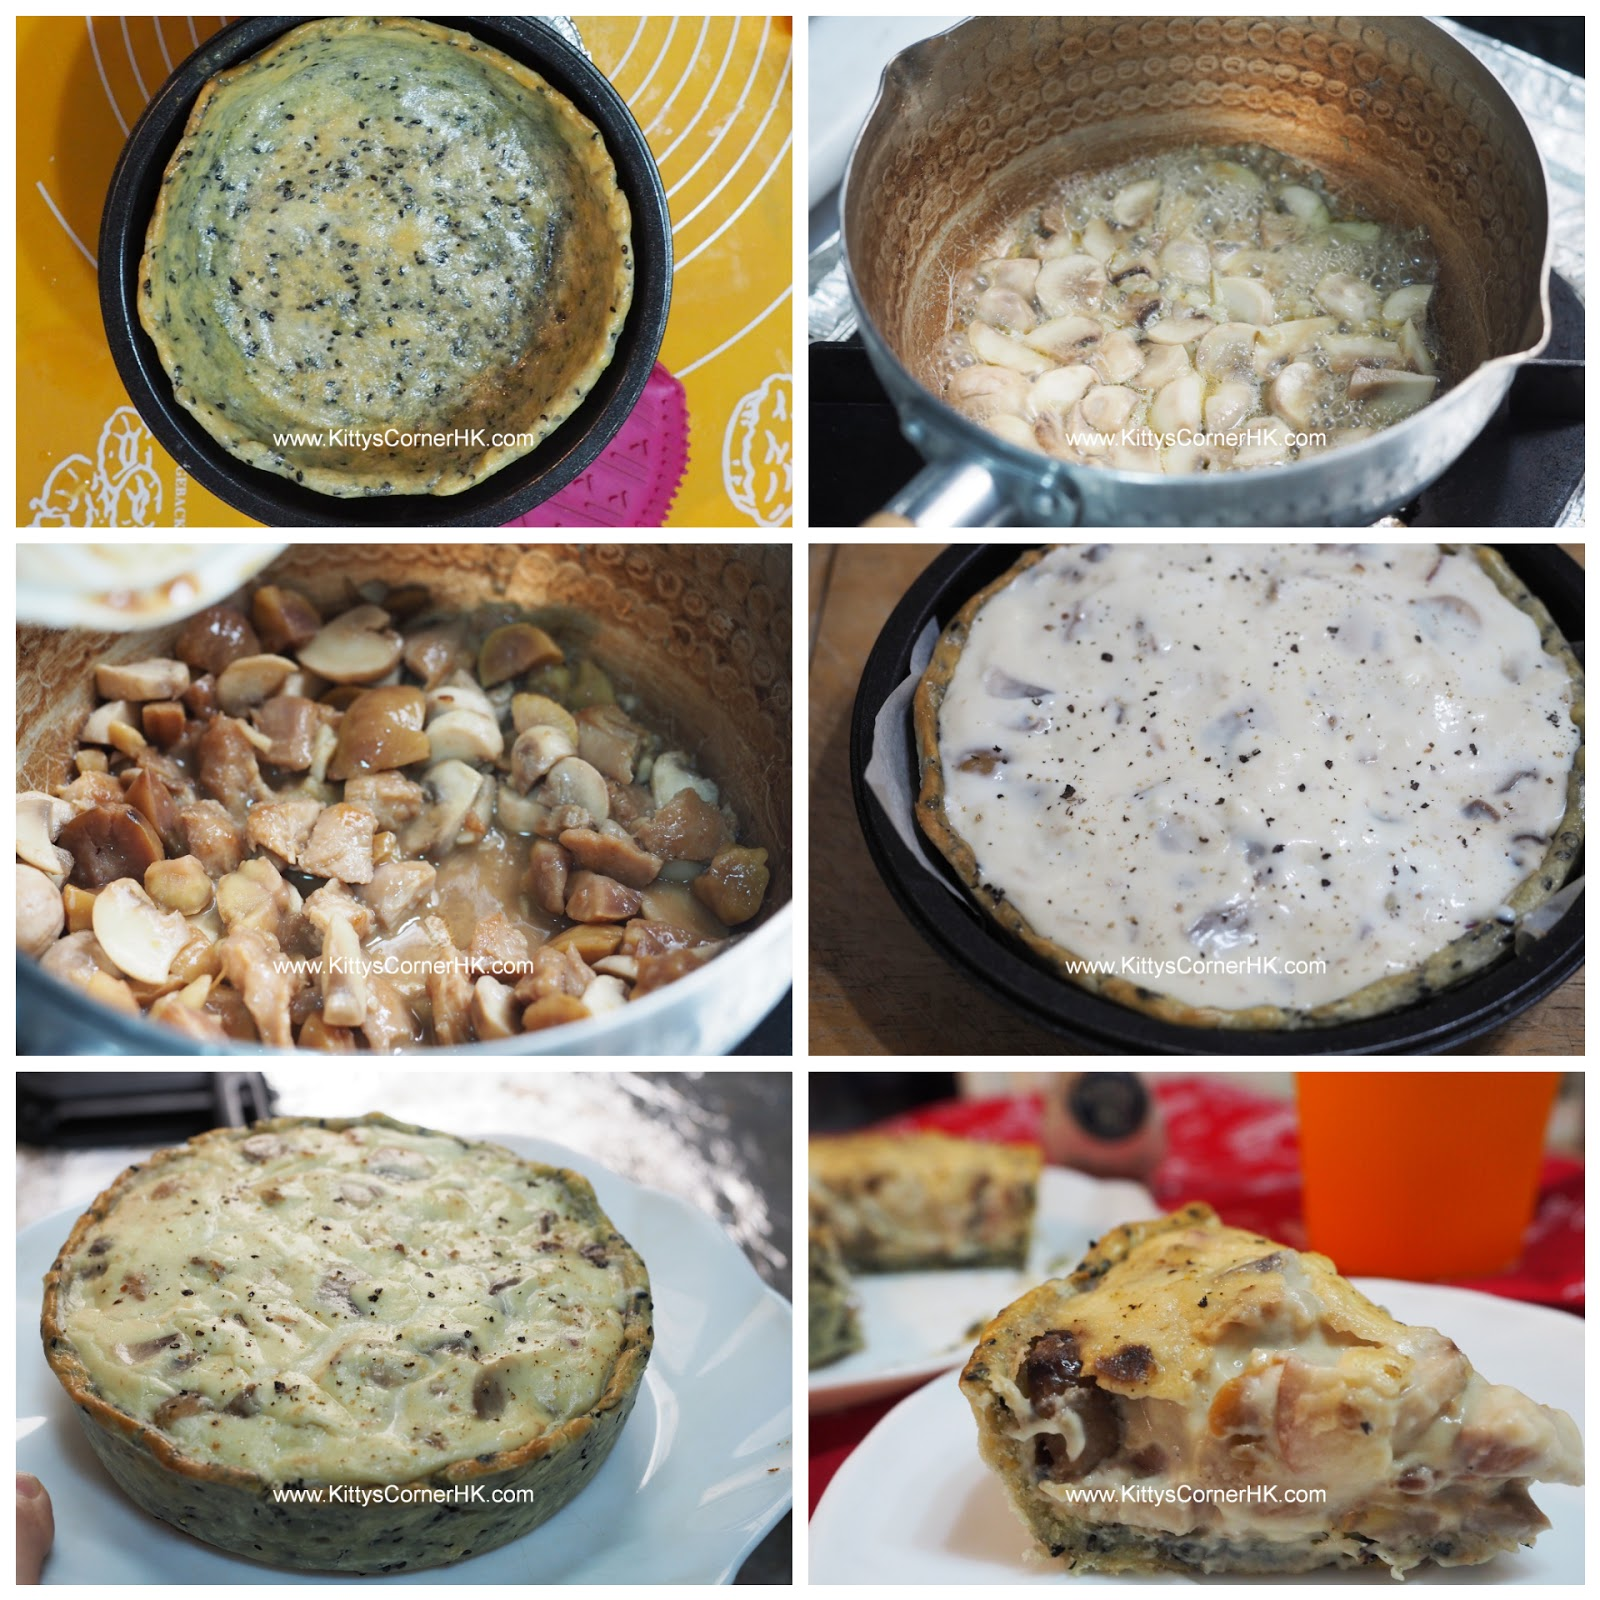 Mushroom Chicken Chestnut Quiche DIY recipe 栗子蘑菇雞鹹批自家烘焙食譜